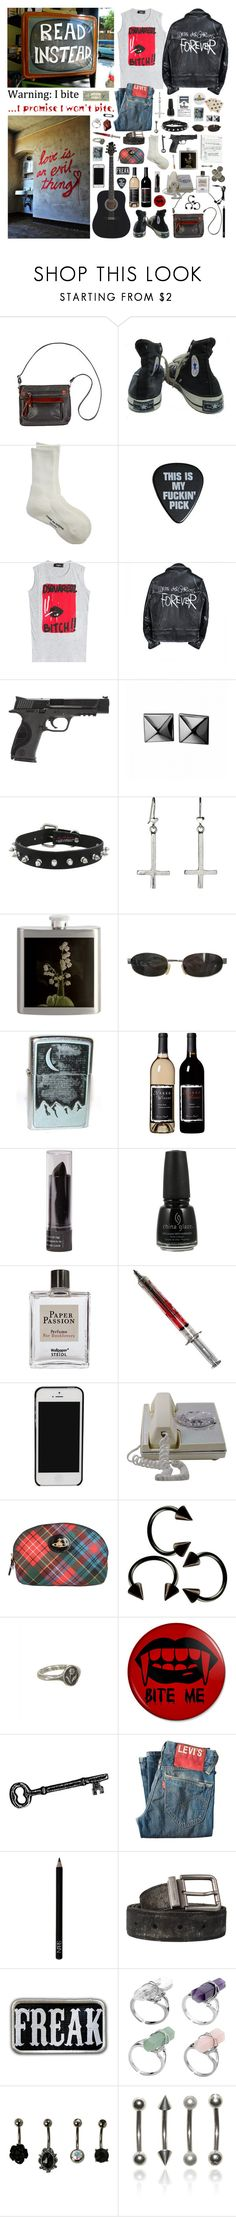 """call me if you wanna feel alive. i need your money"" by nothingisnormal ❤ liked on Polyvore featuring Overland Sheepskin Co., Converse, Comme des Garçons, Dsquared2, Smith & Wesson, Waterford, Tom Ford, Market, China Glaze and Steidl"